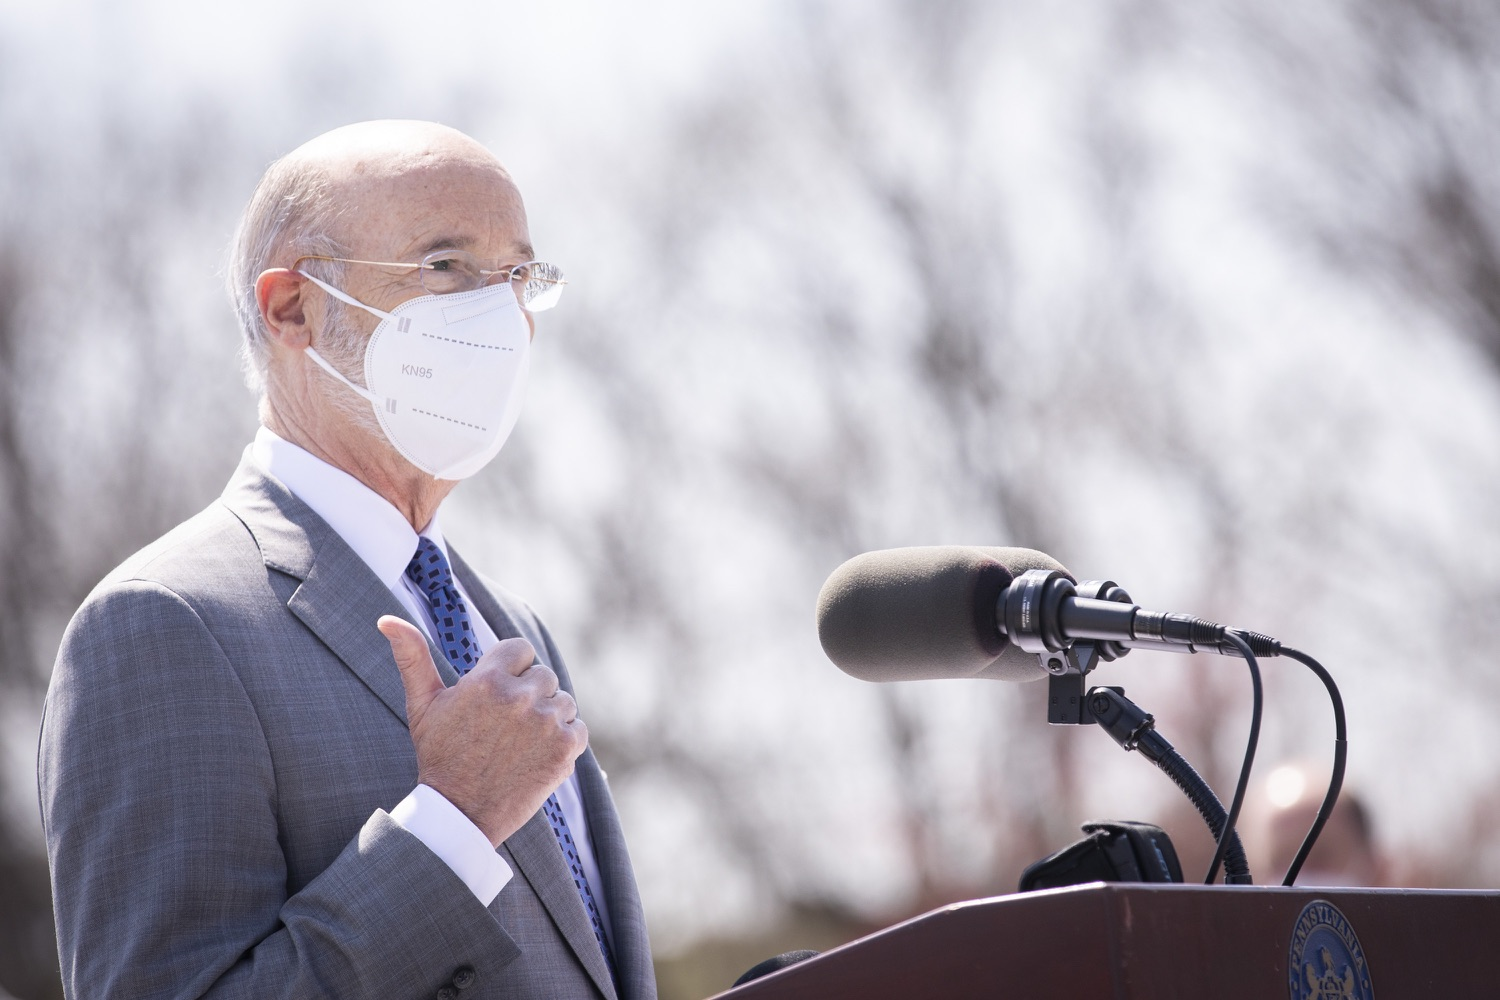 """<a href=""""https://filesource.wostreaming.net/commonwealthofpa/photo/18654_gov_vaccineeligibility_dz_009.jpg"""" target=""""_blank"""">⇣Download Photo<br></a>Pennsylvania Governor Tom Wolf speaking to the press.  Gov. Tom Wolf visited Weis Markets in Enola, Cumberland County, to recognize the heroic efforts of Pennsylvania's grocery store workers, who are now eligible for the COVID-19 vaccine.  The governor expressed his gratitude to Pennsylvania's 180,000 grocery store workers, who suddenly became frontline workers as the state took critical steps to mitigate the spread of COVID-19. Grocery stores were deemed life-sustaining businesses, and these employees put their lives at risk to ensure their stores remained open to the public. APRIL 06, 2021 - ENOLA, PA.."""